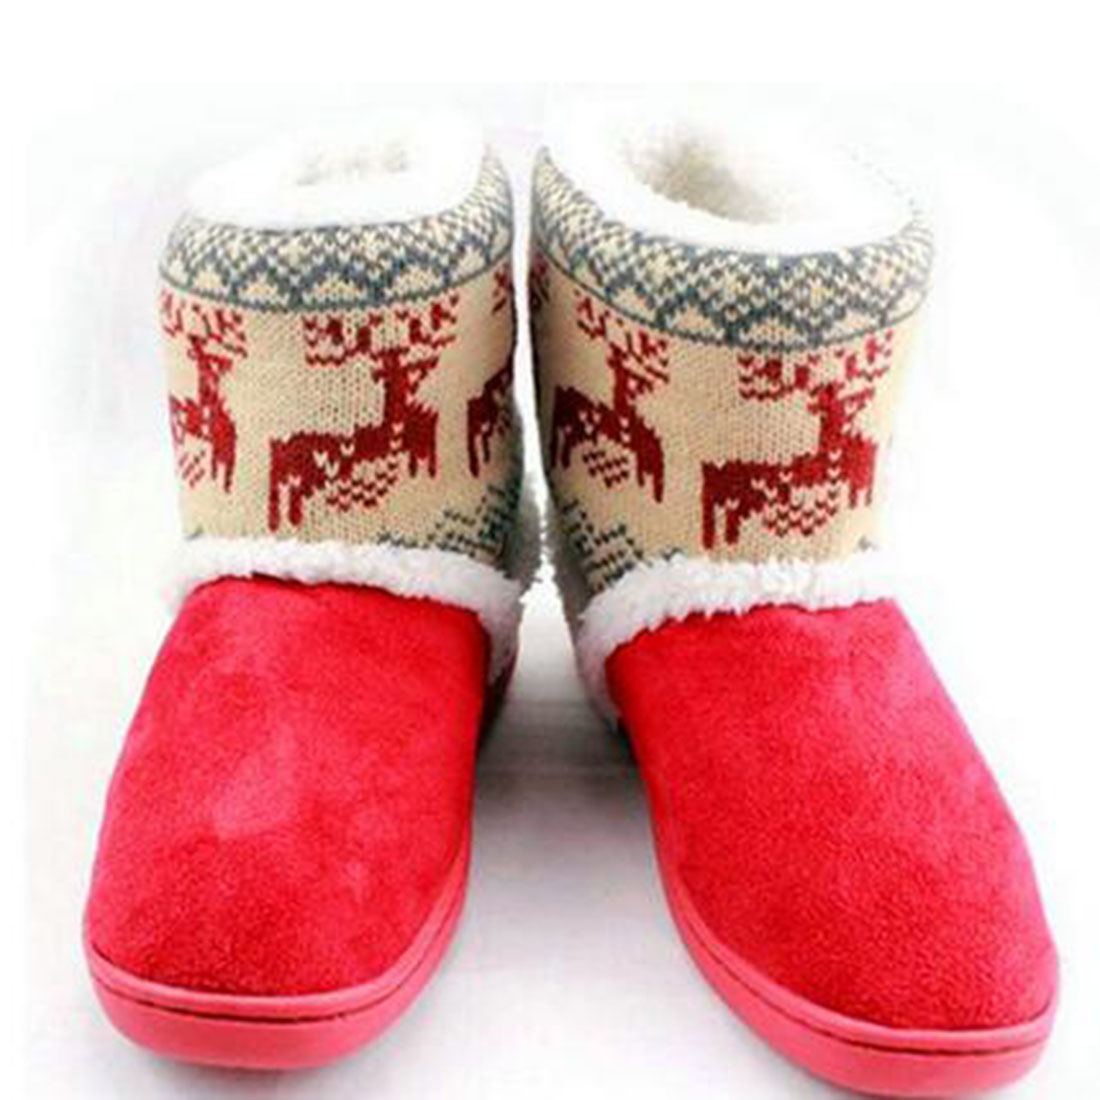 Deer Snow Booties Women Thicken Mid-calf  Winter Elk Warm Women Couple Plush Boots Fur Lined Shoes plus size 36-41 жития святых екатеринбургской епархии